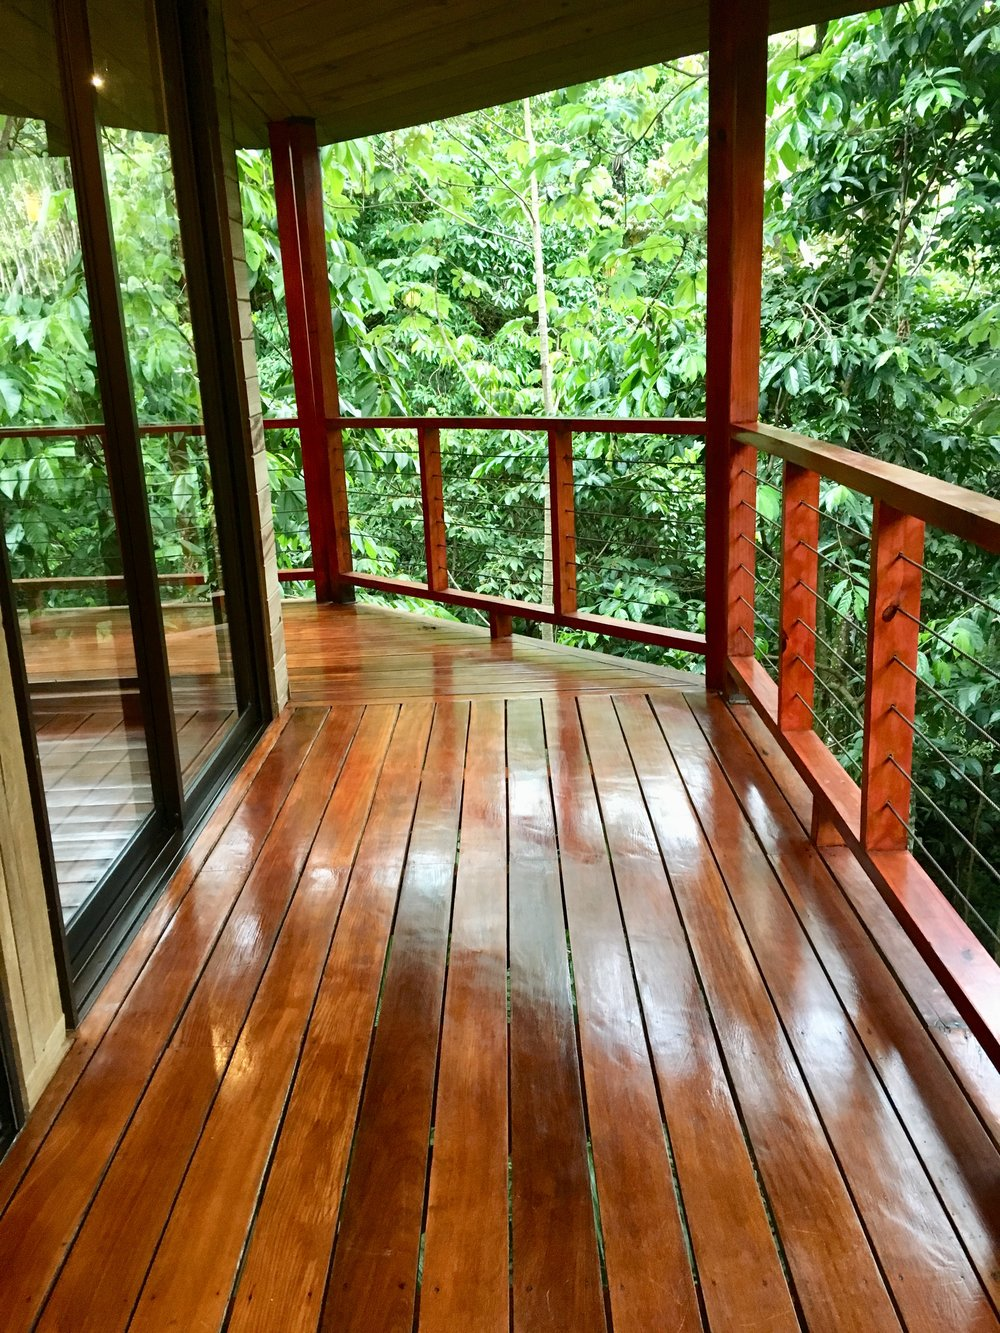 Upstairs deck overlooking jungle